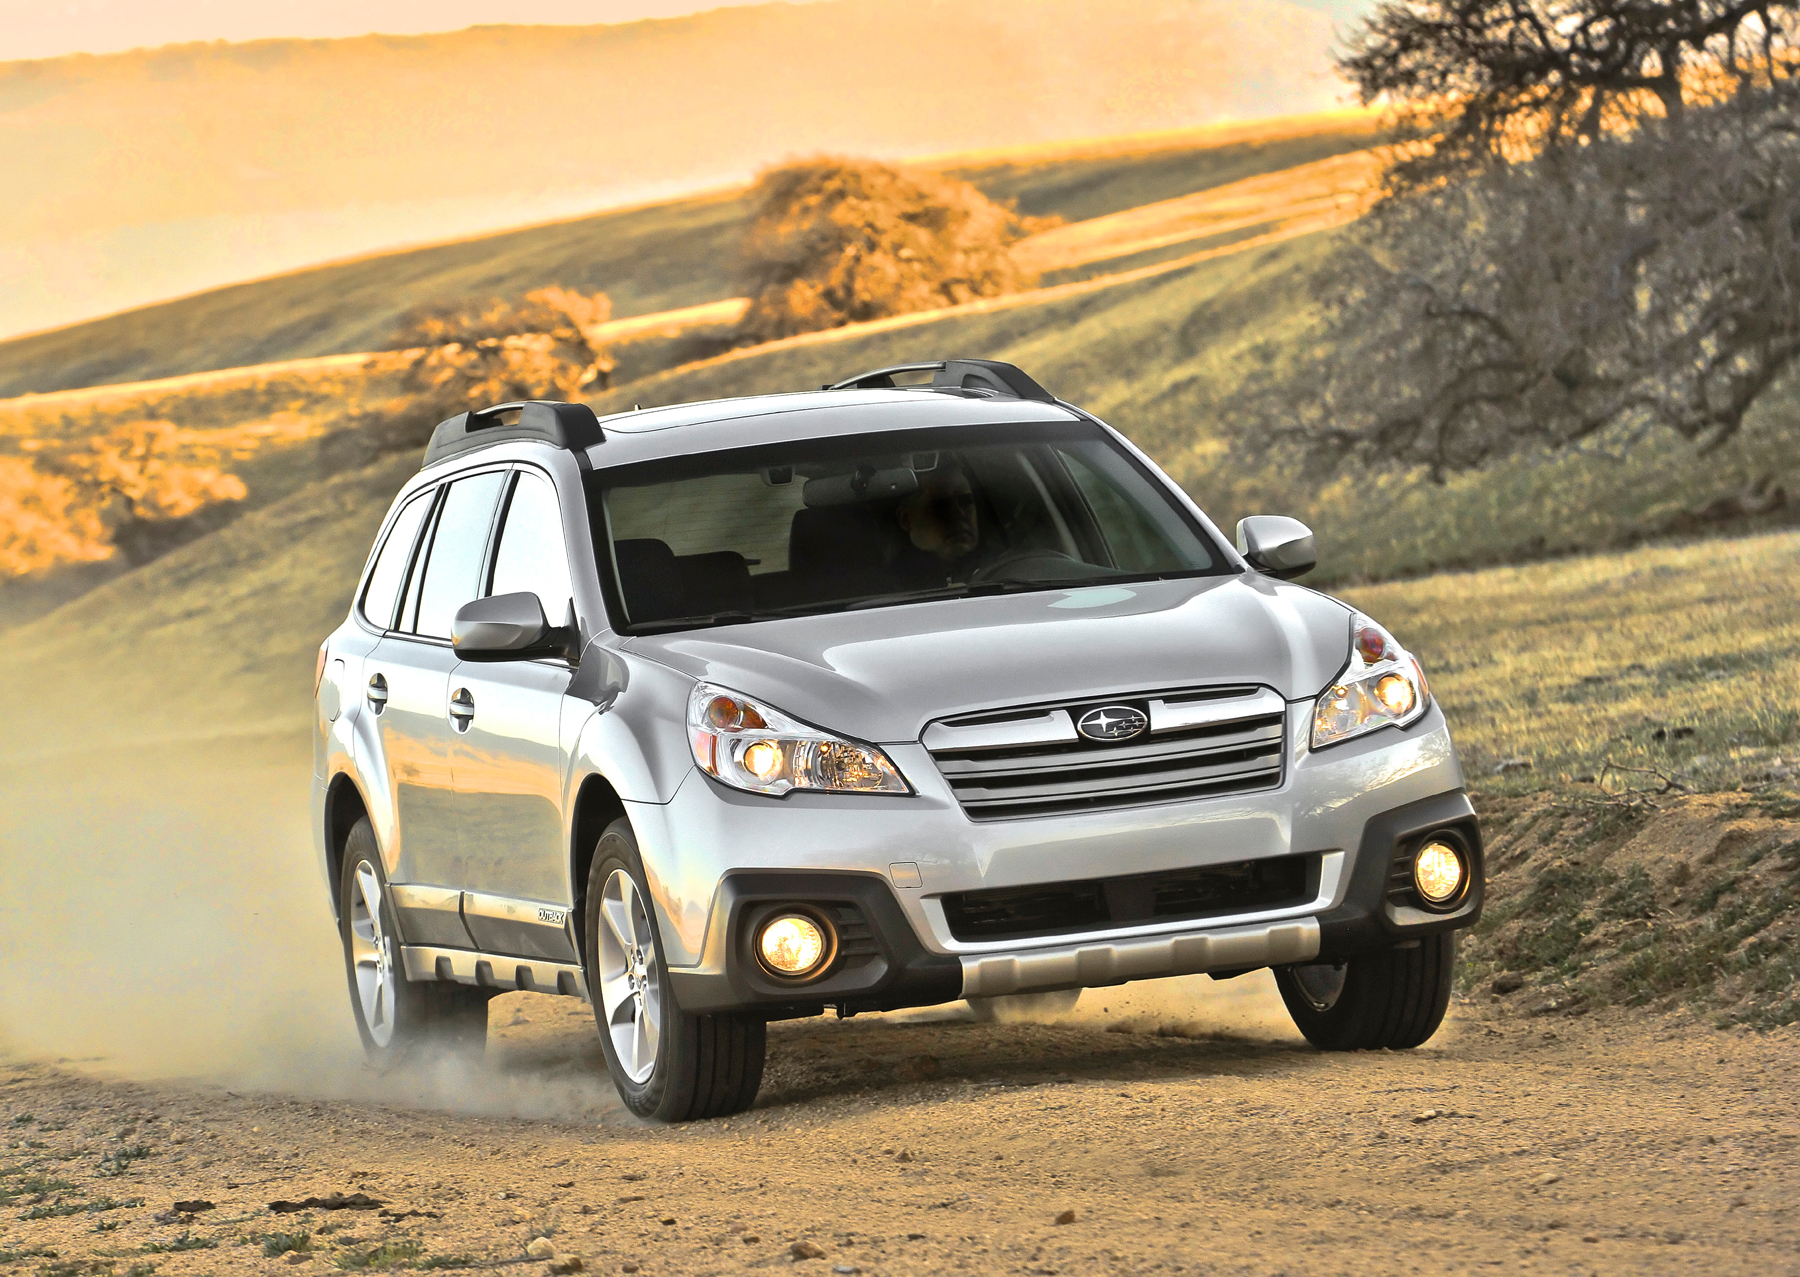 2013 subaru outback new engine revised styling bonus wheels for 2013 outback has a slightly more athletic appearance with its restyled front end featuring new headlights grille front bumper and fog lights vanachro Gallery